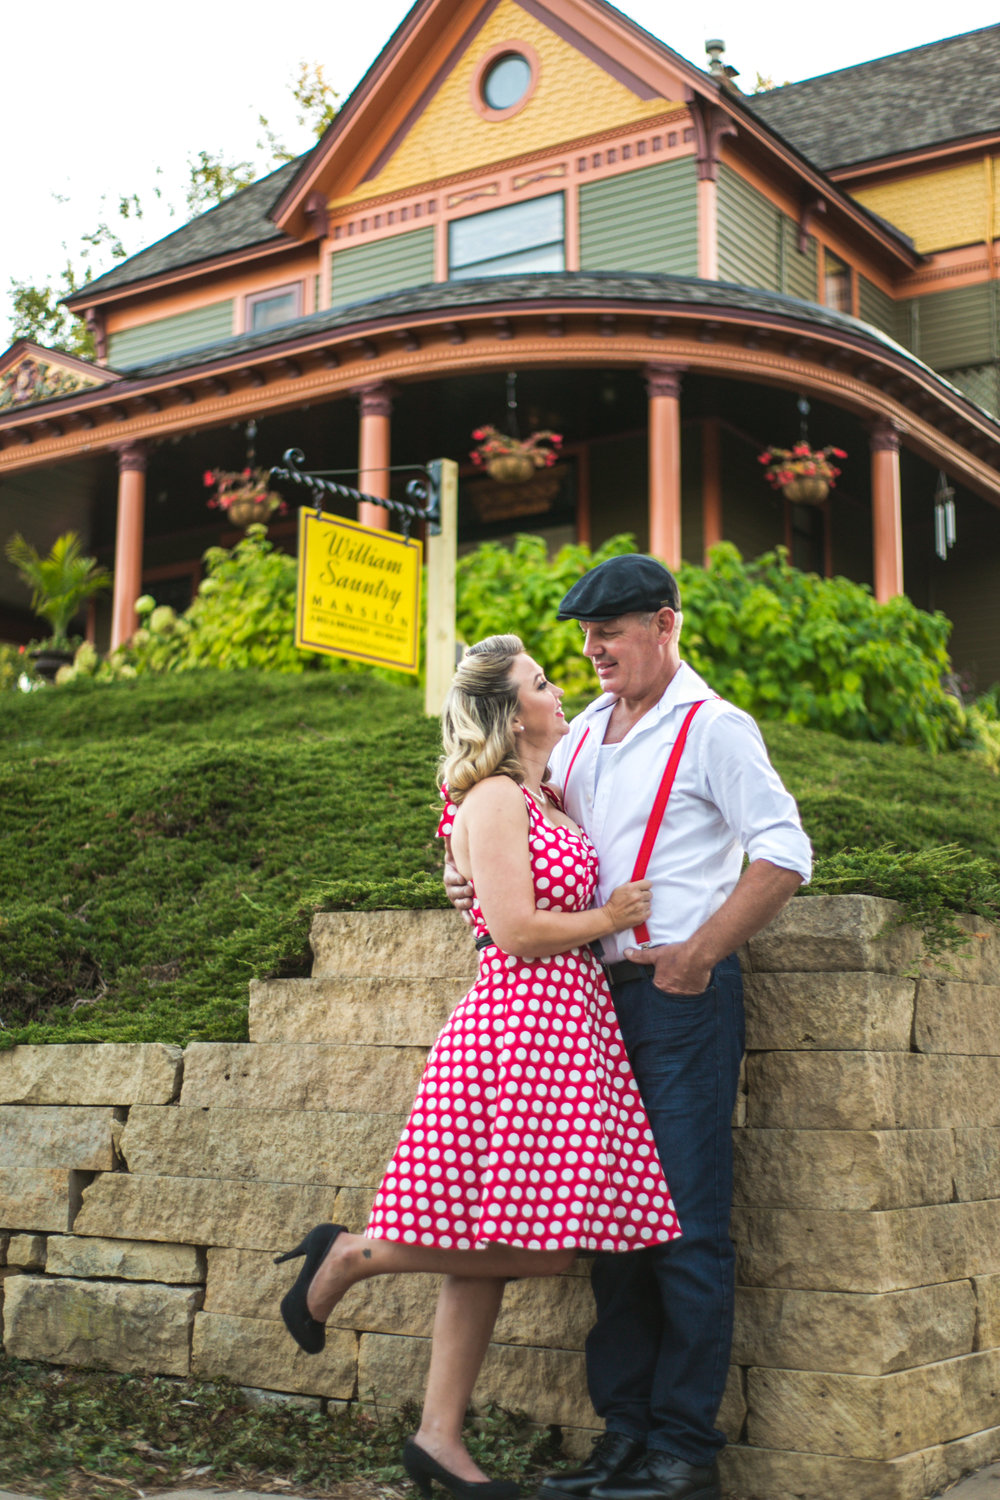 Couple poses in front of The William Sauntry Mansion in Stillwater